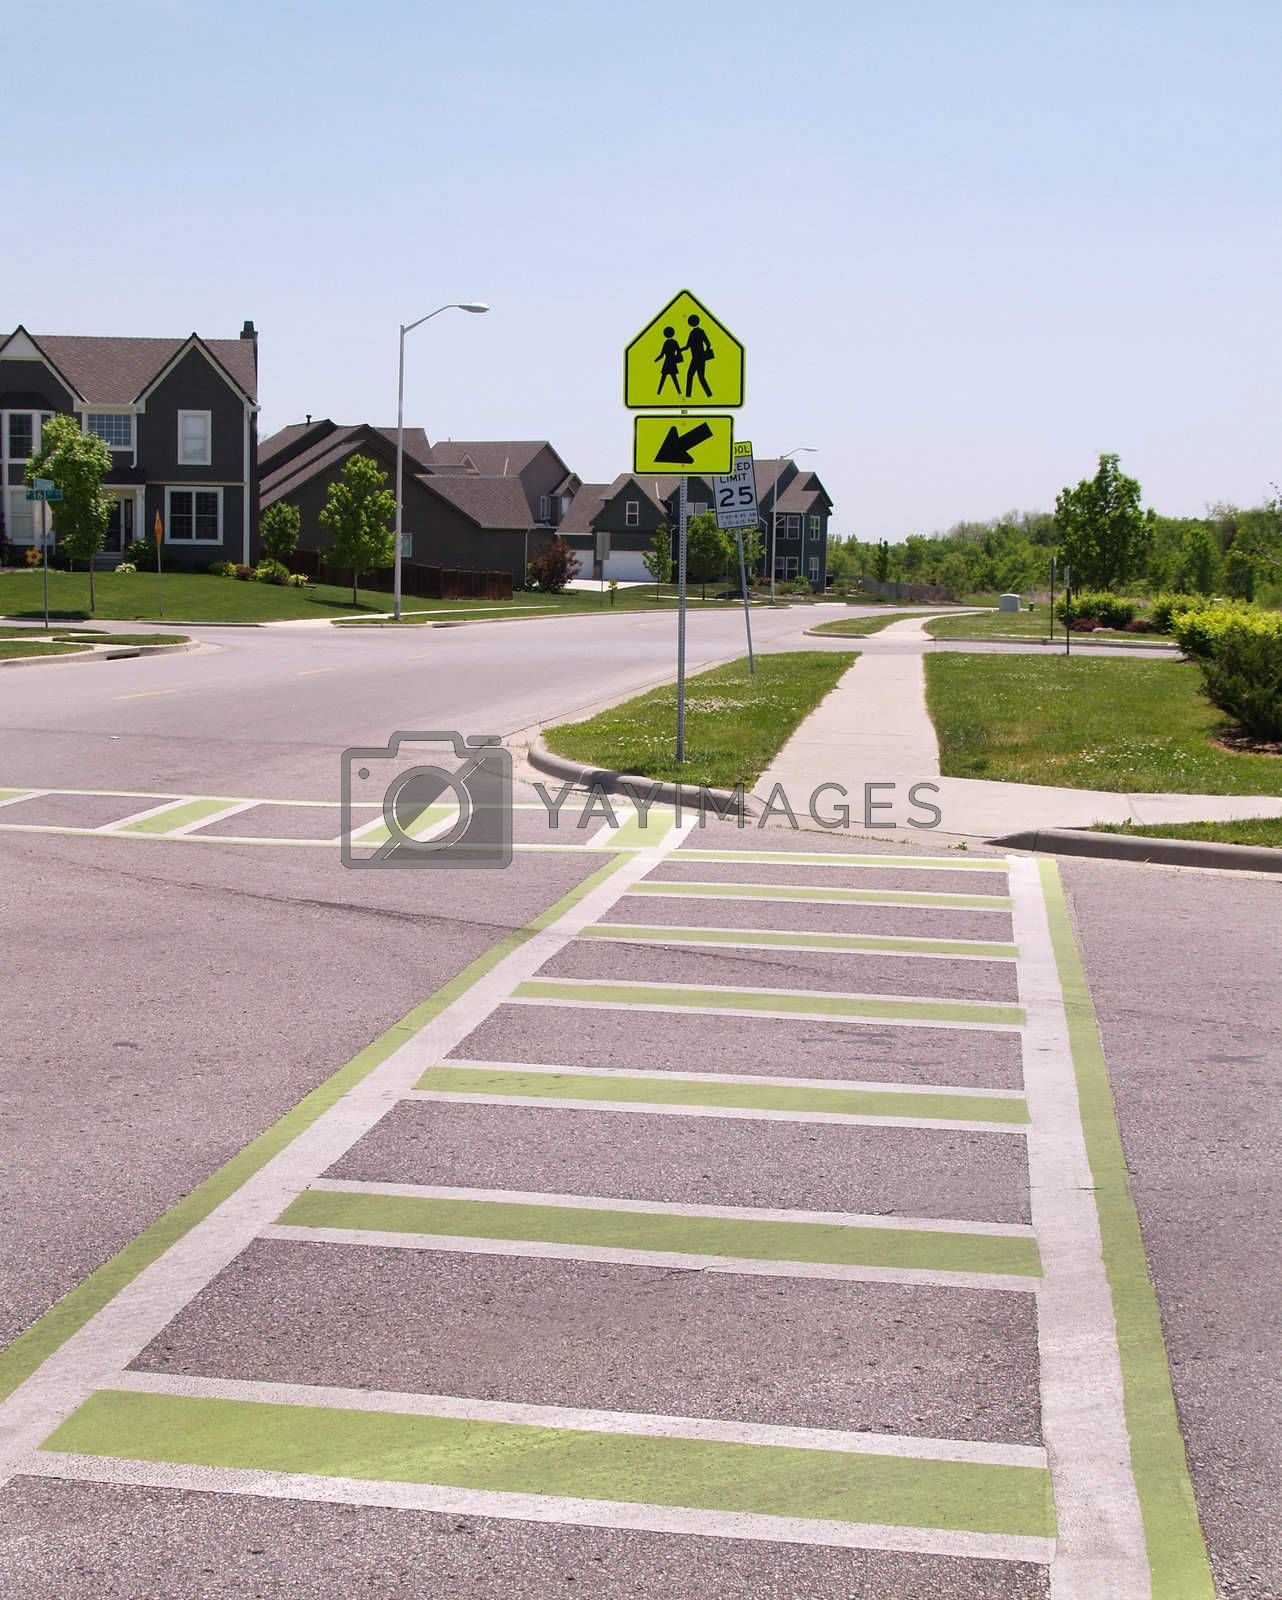 painted lines on the pavement to designate a school crossing area